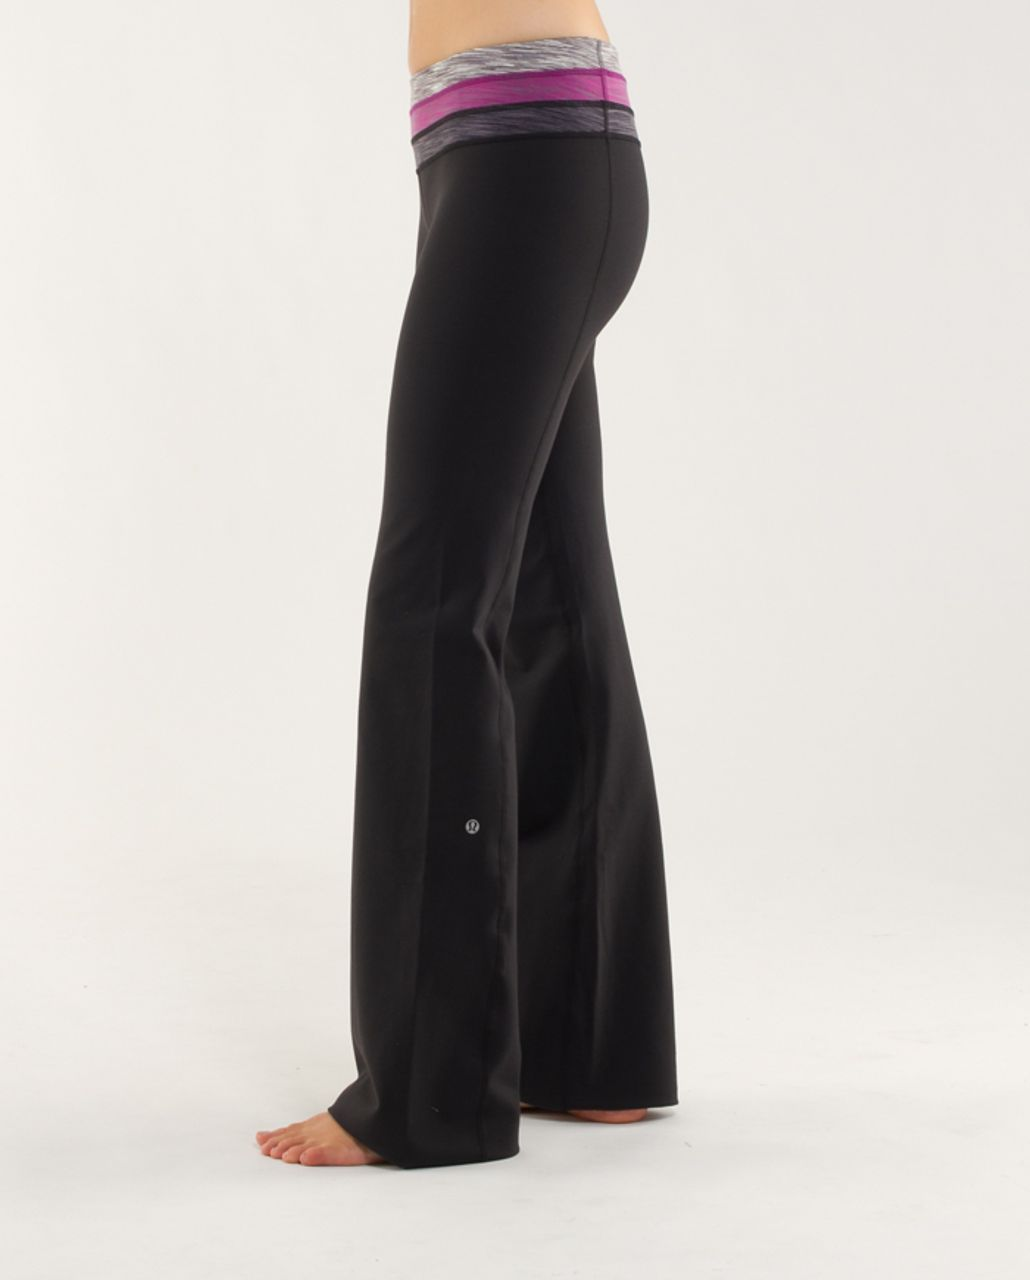 Lululemon Groove Pant (Regular) - Black /  Magnum Space Dye /  Dew Berry Space Dye